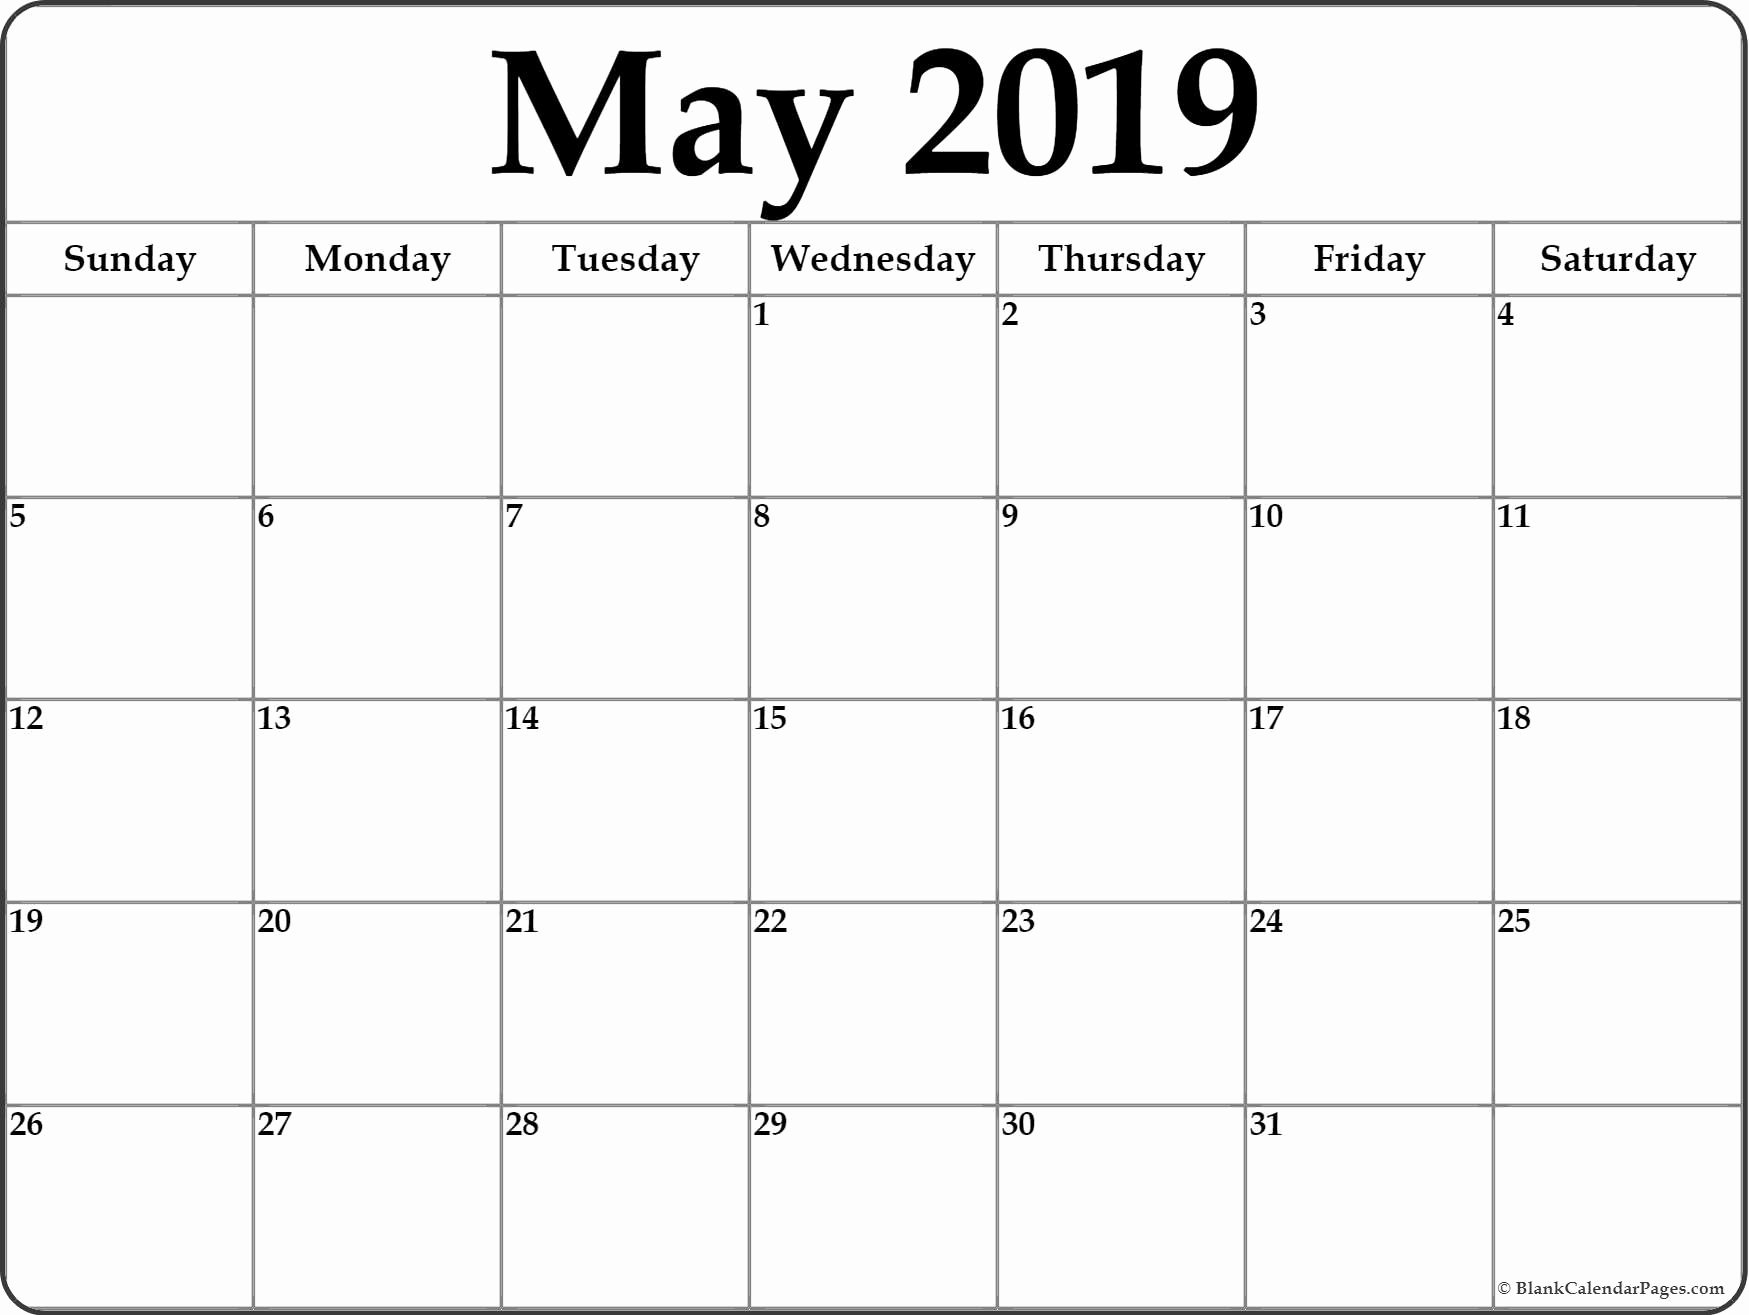 Blank Calendar Template 2019 Awesome May 2019 Blank Calendar Templates